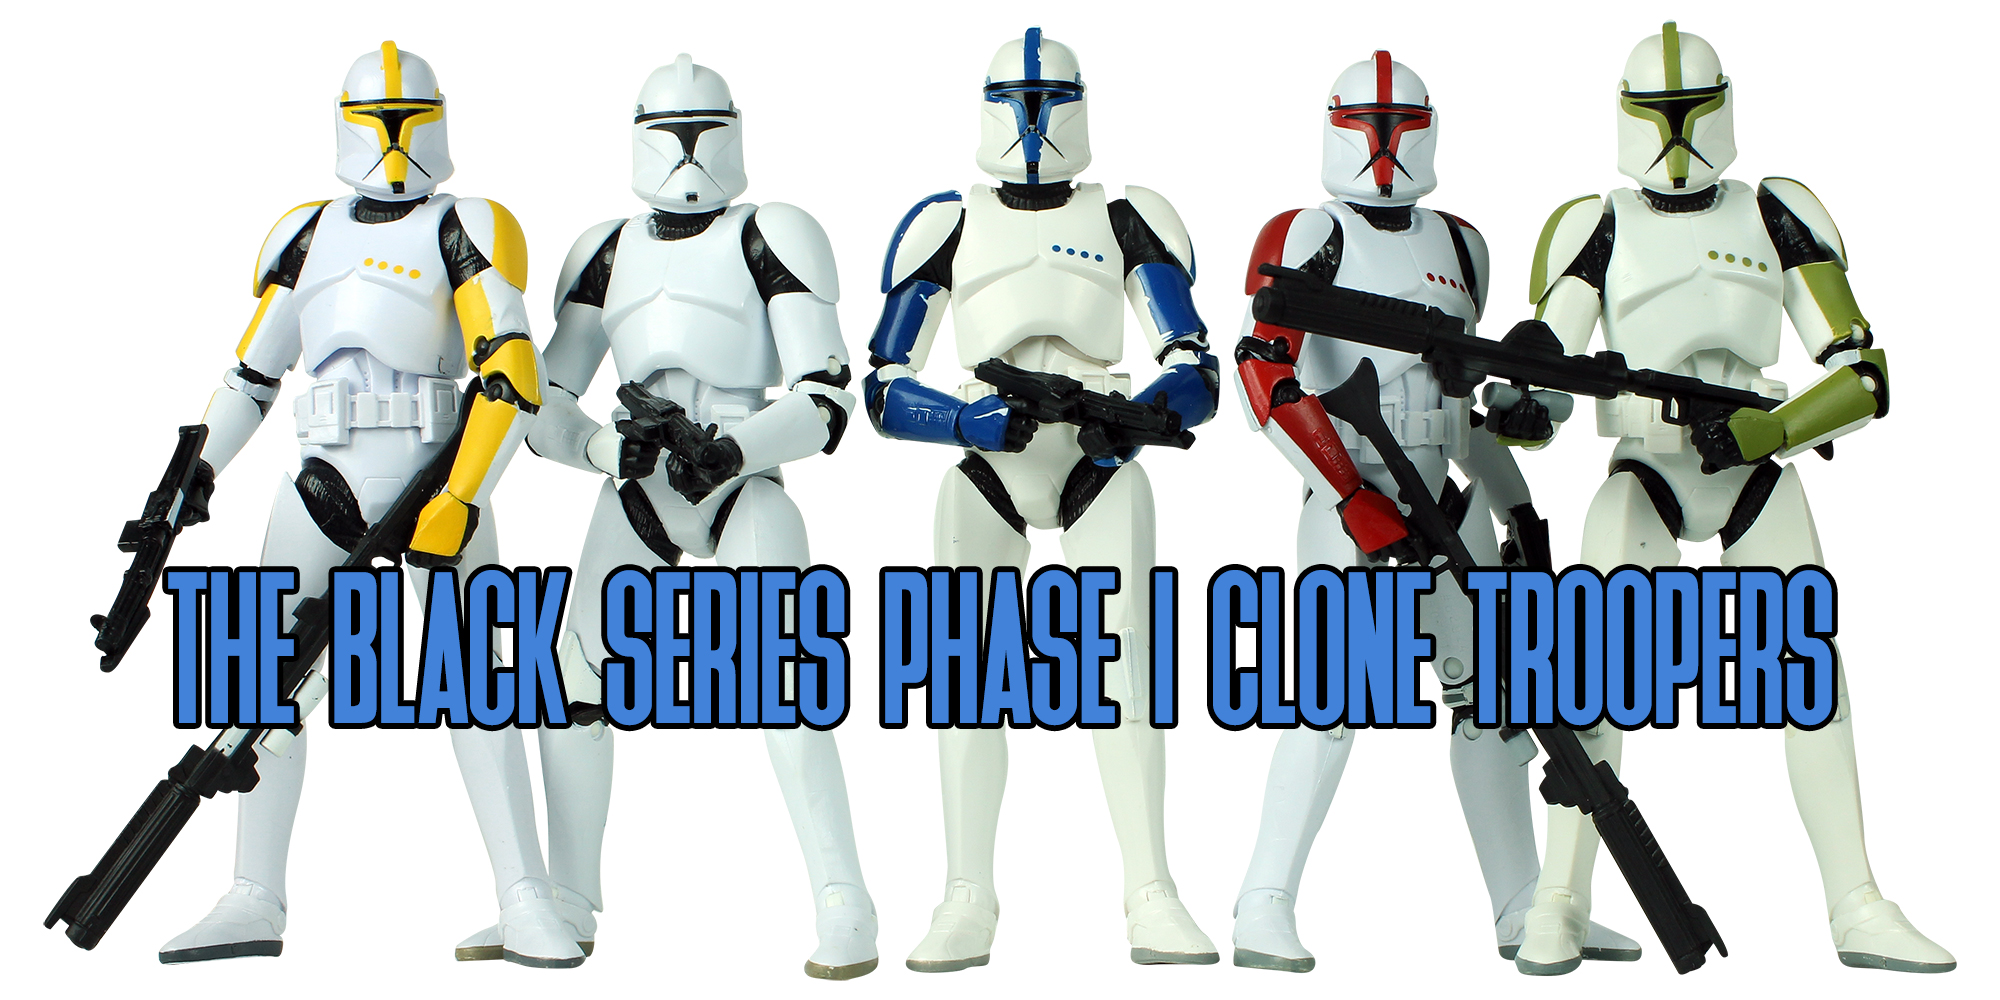 Black Series Clone Troopers